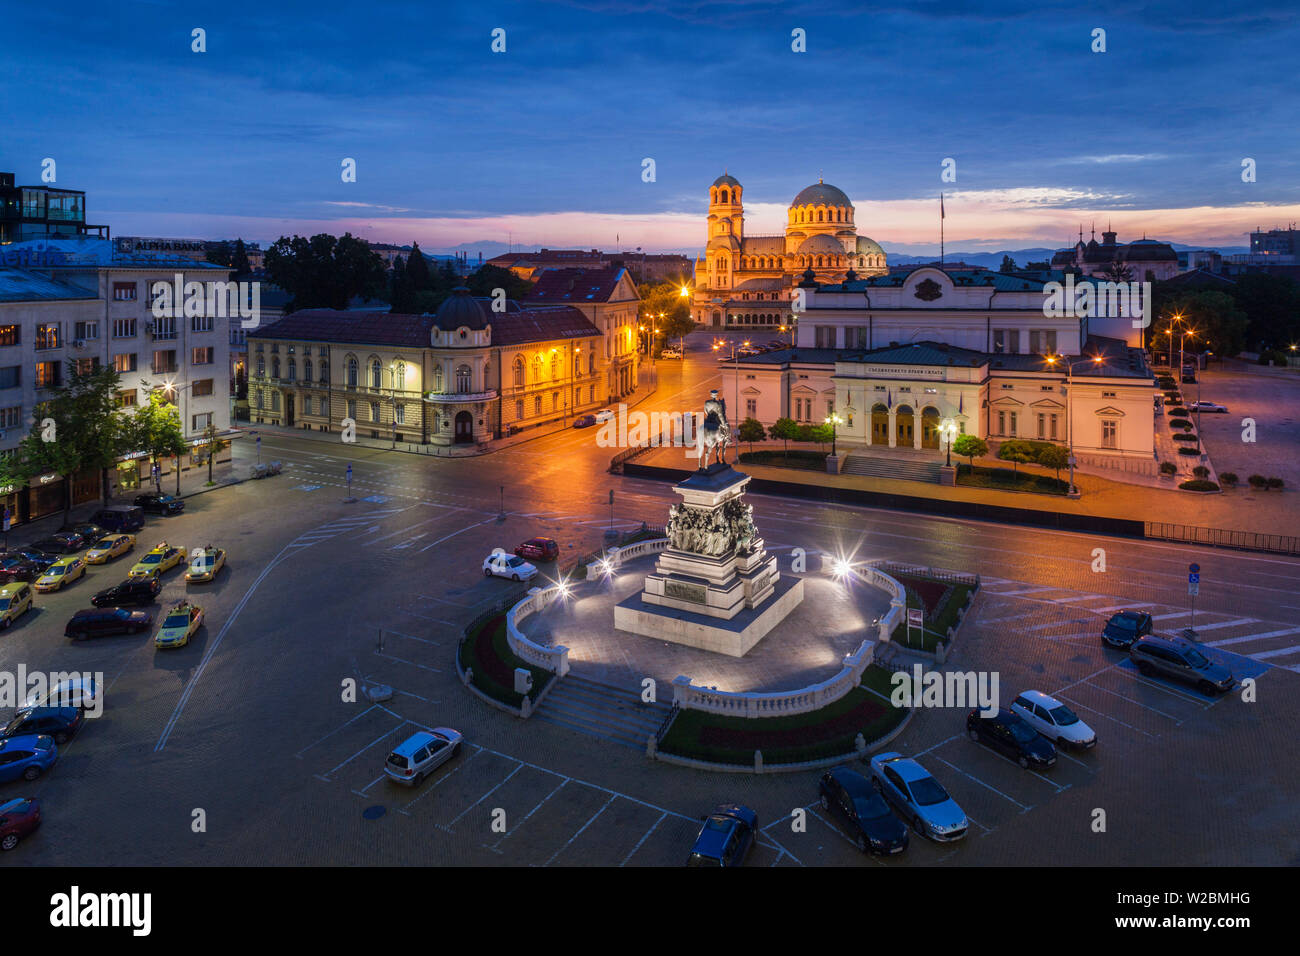 Bulgaria, Sofia, Ploshtad Narodno Sabranie Square, Statue of Russian Tsar Alexander II, National Assembly building, and Alexander Nevski Cathedral, elevated view, dawn - Stock Image